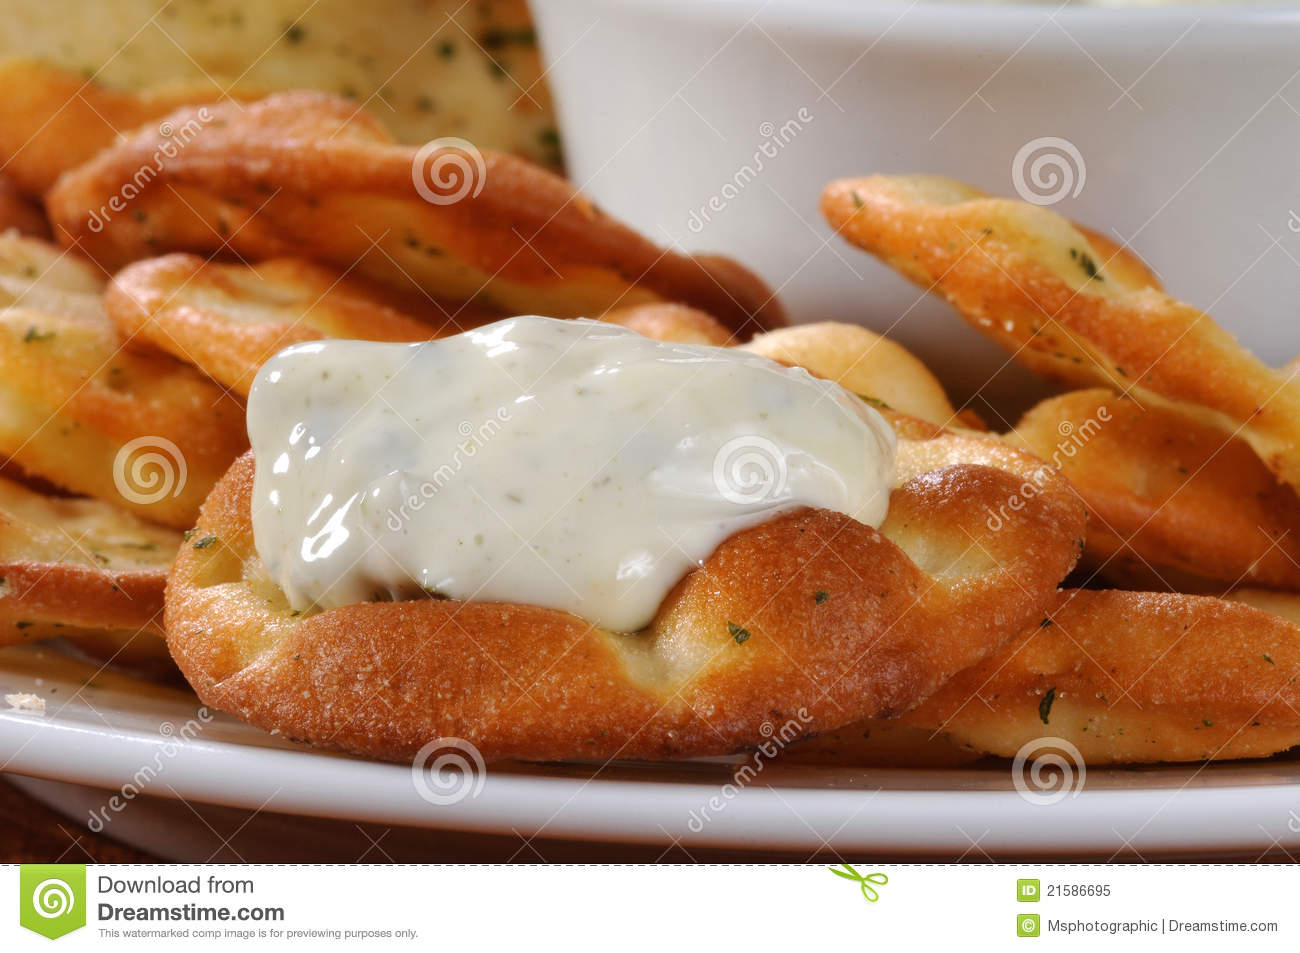 Spinach Dip On A Pita Cracker Royalty Free Stock Photo   Image